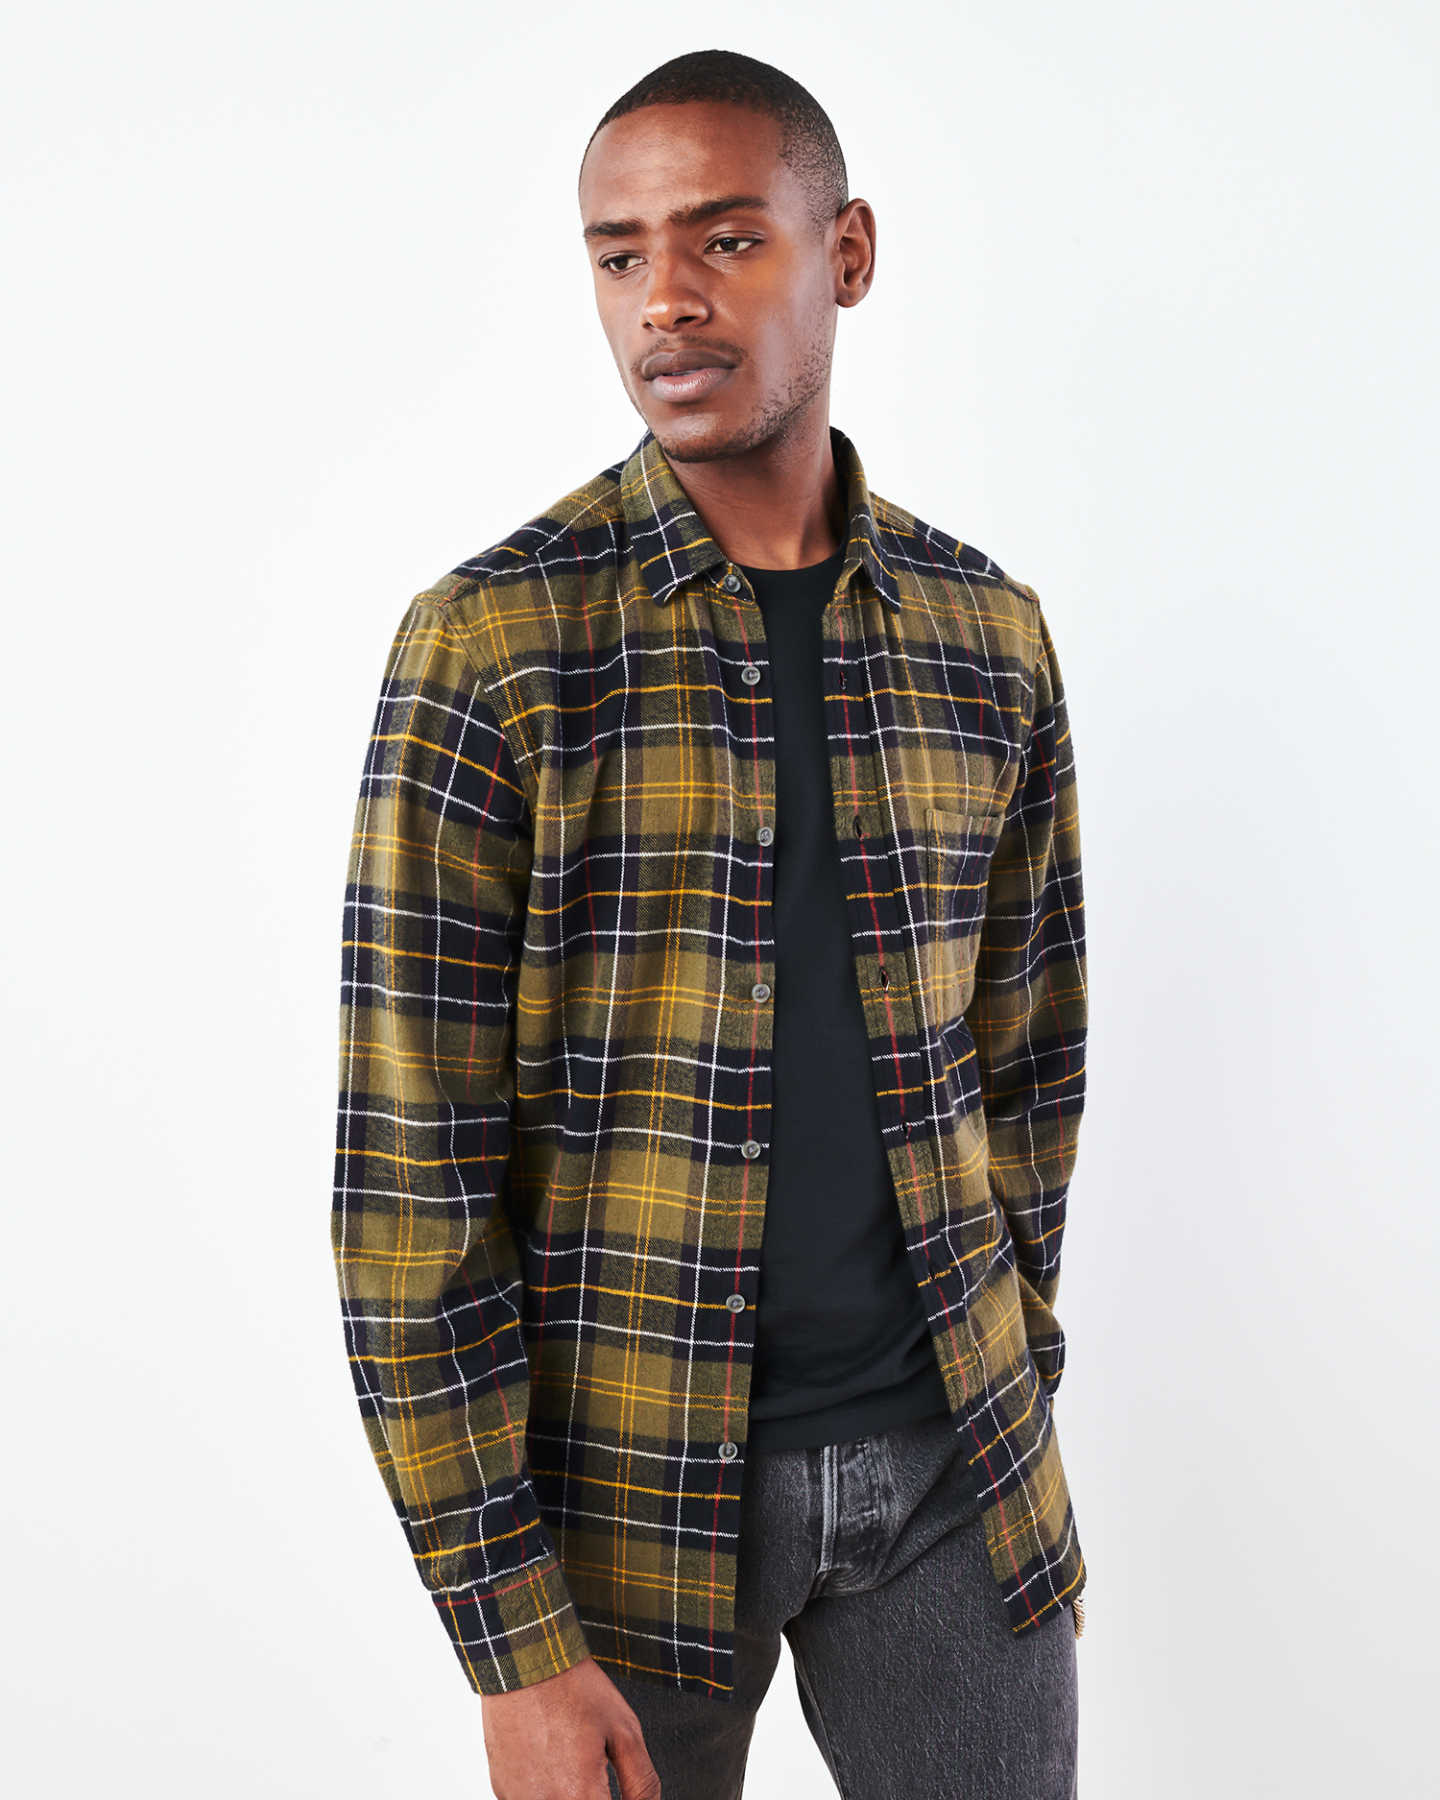 Soft Brushed Plaid Flannel Shirt - Olive/Black